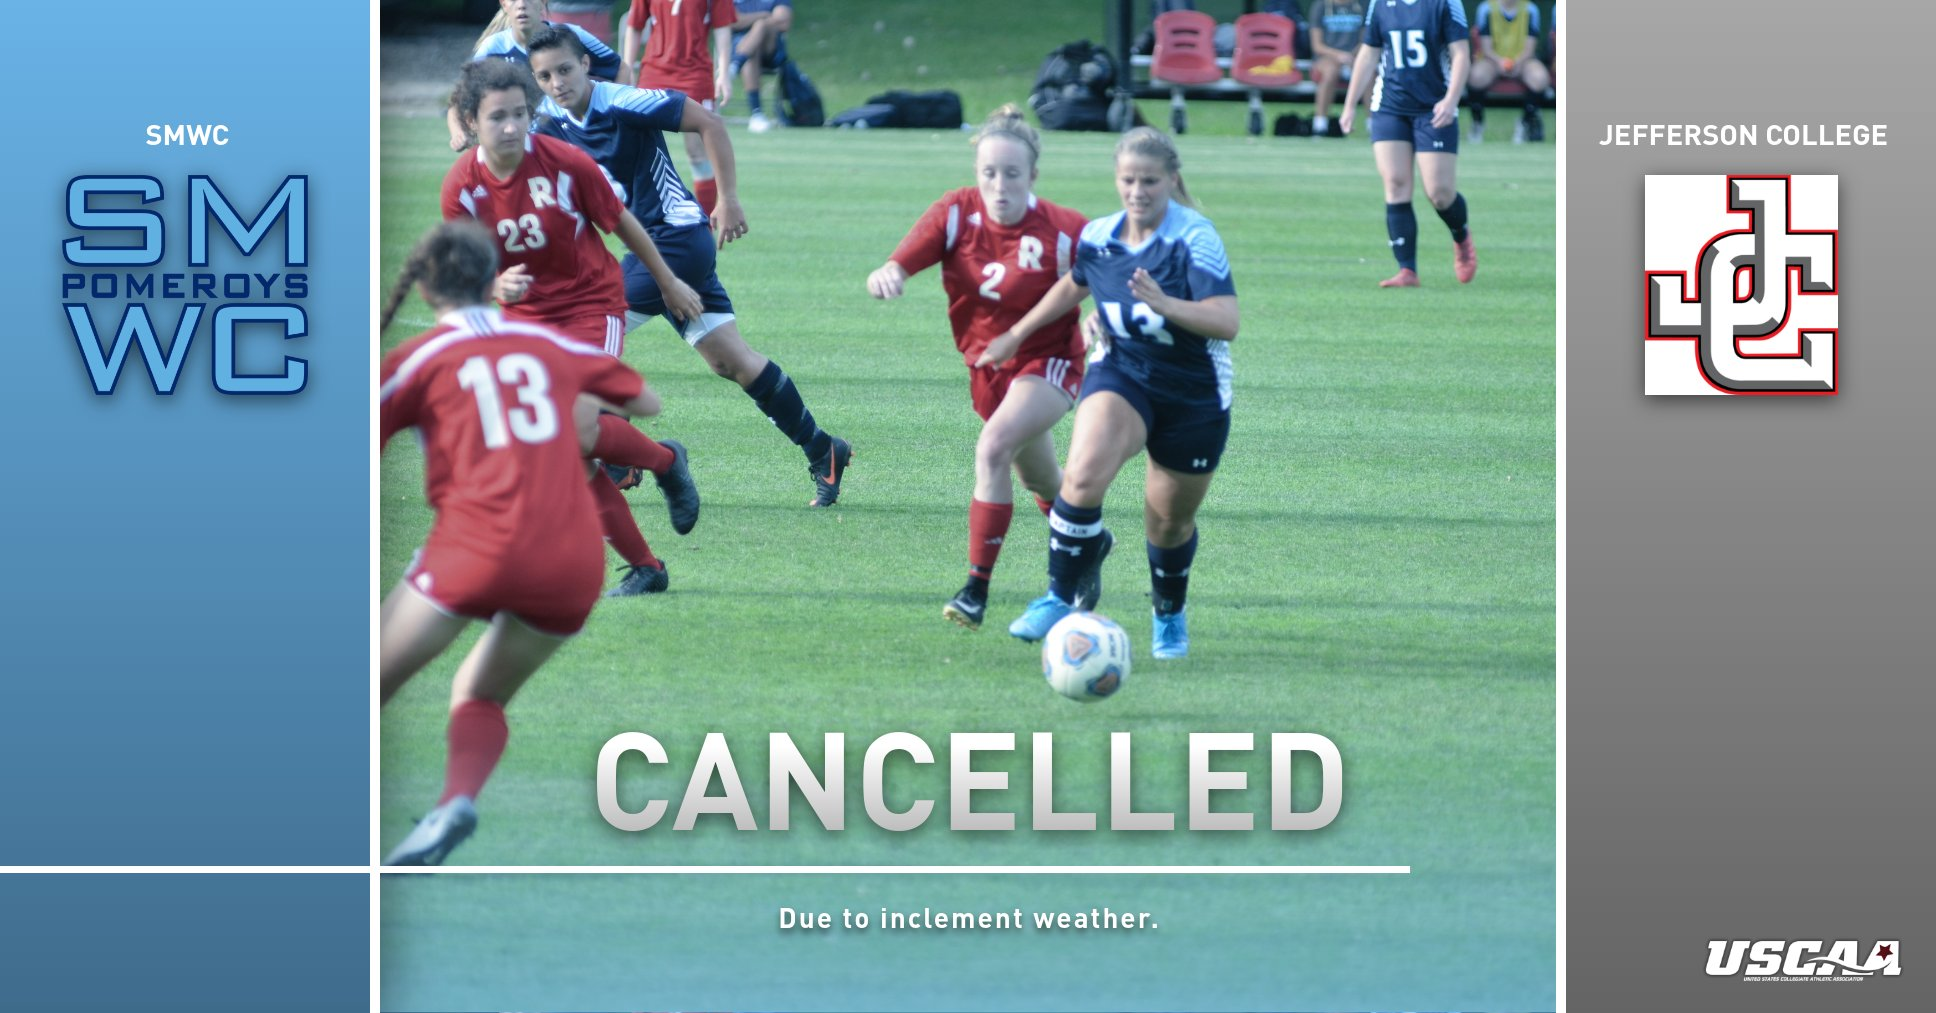 Women's Soccer Match Against Jefferson College Cancelled Due to Inclement Weather